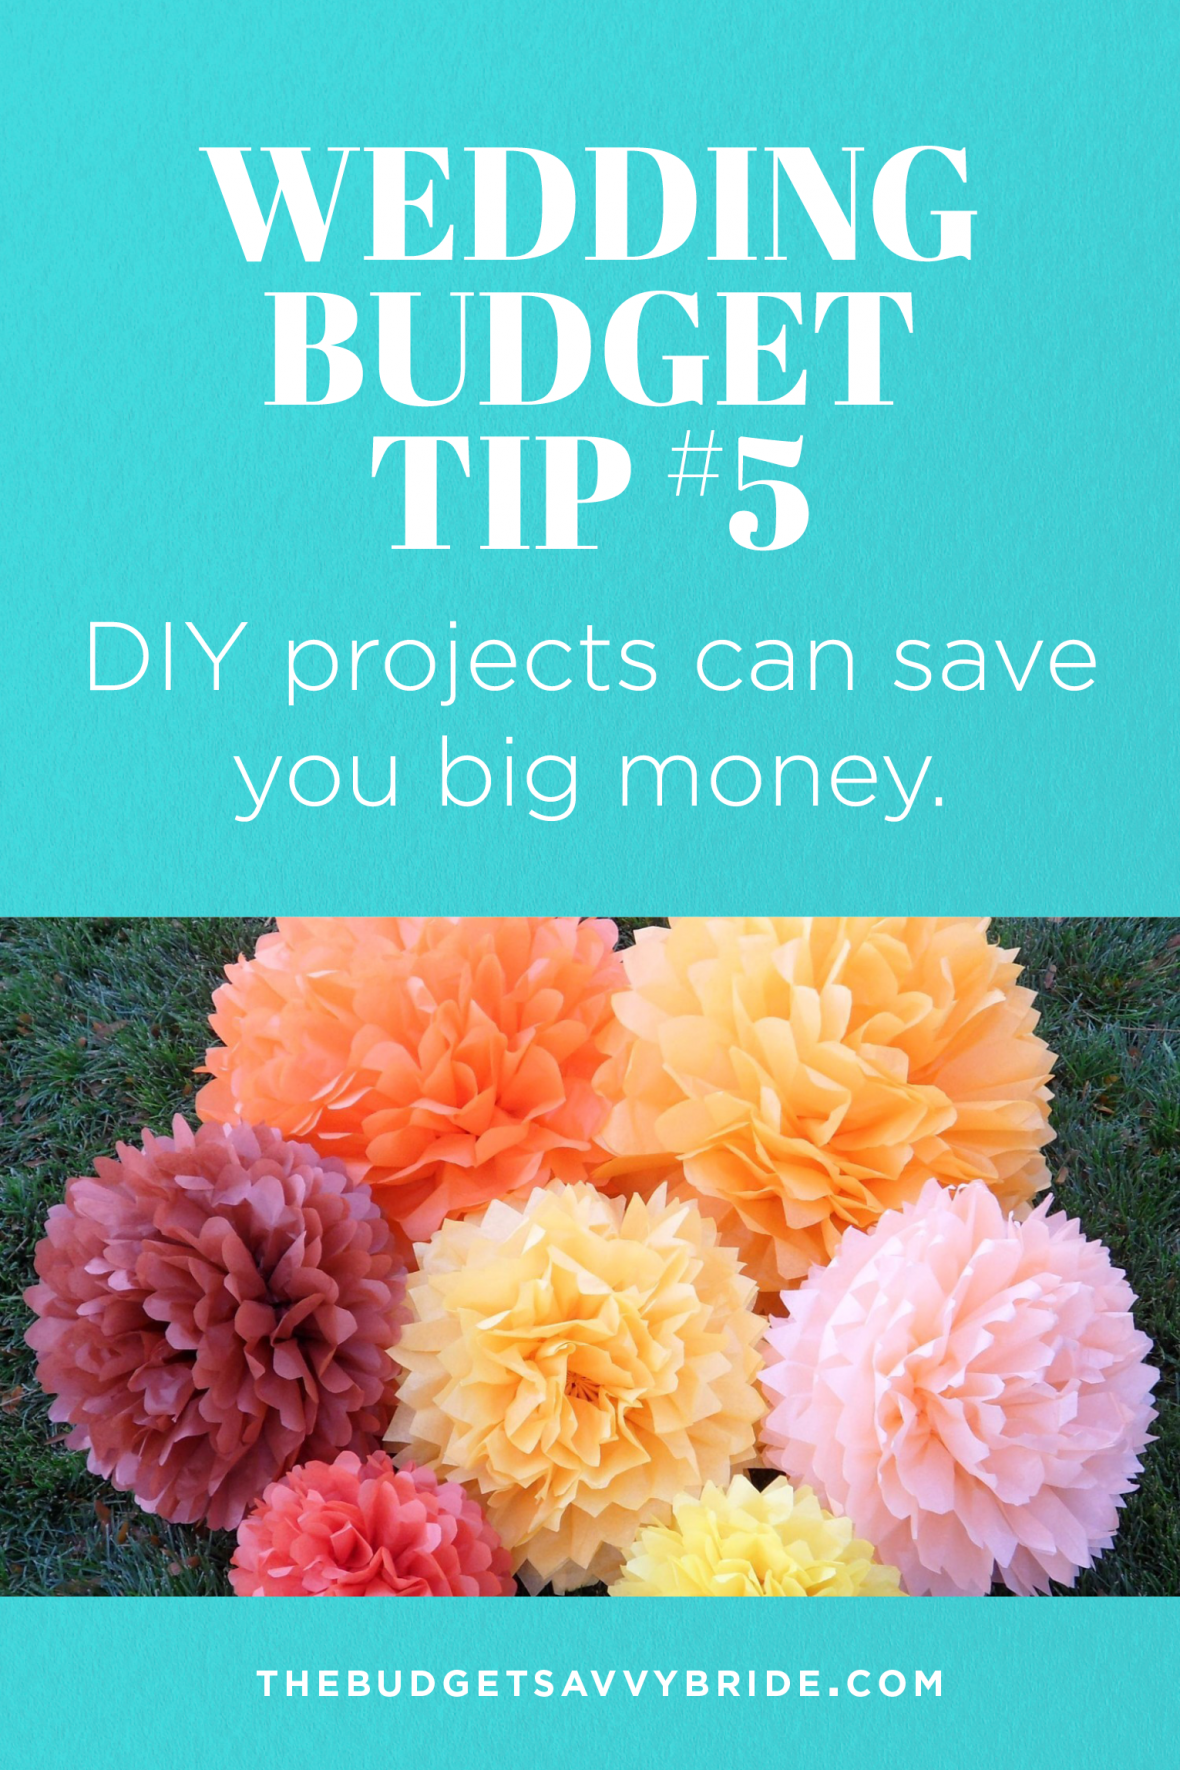 Wedding Budget Tip #5: DIY Projects can save you big money